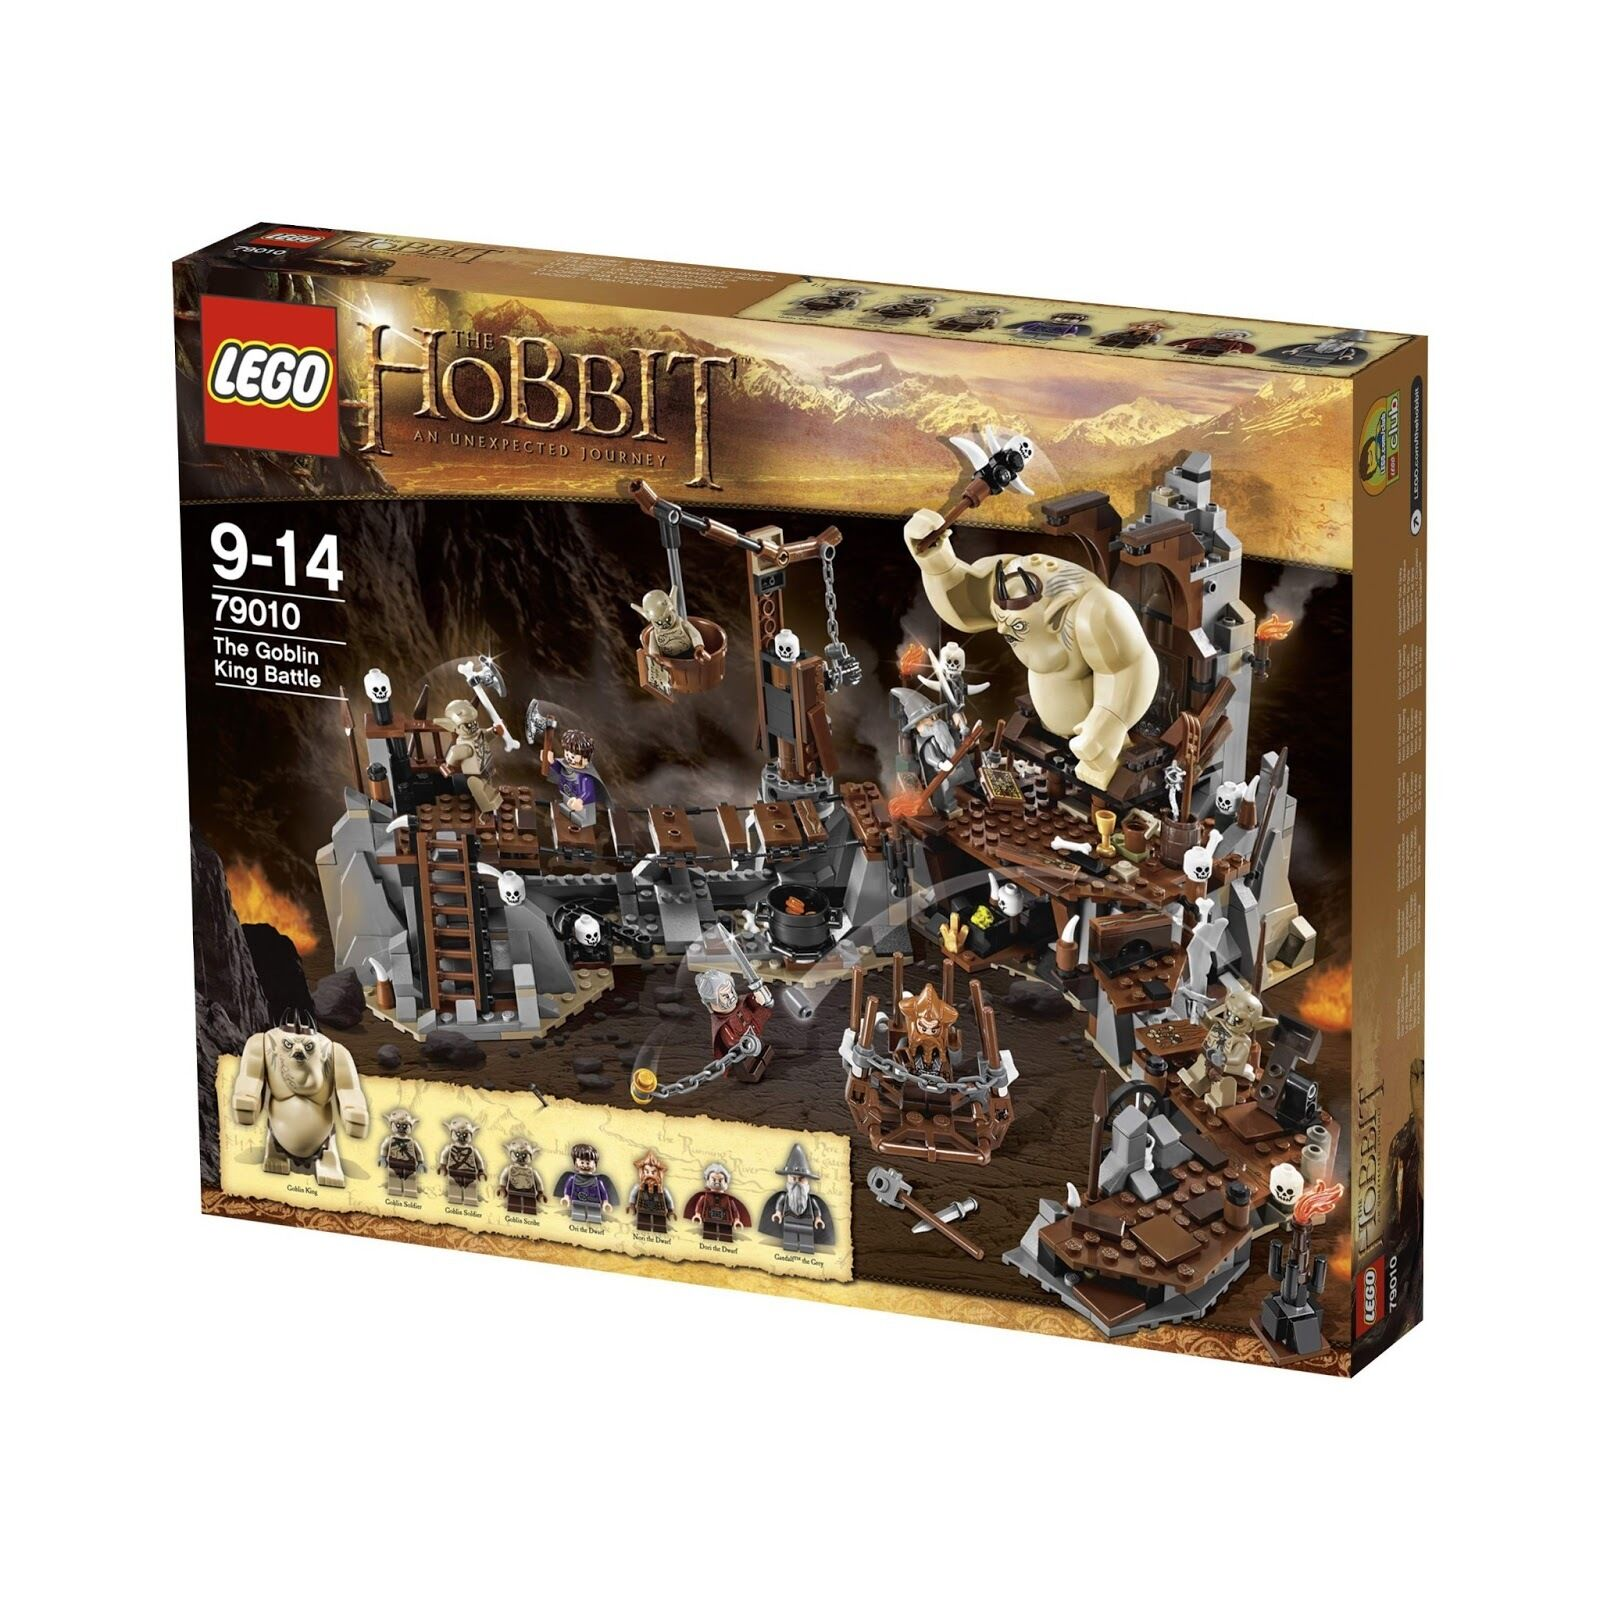 Lego 79010 The Goblin King Battle - The Hobbit NEW in box